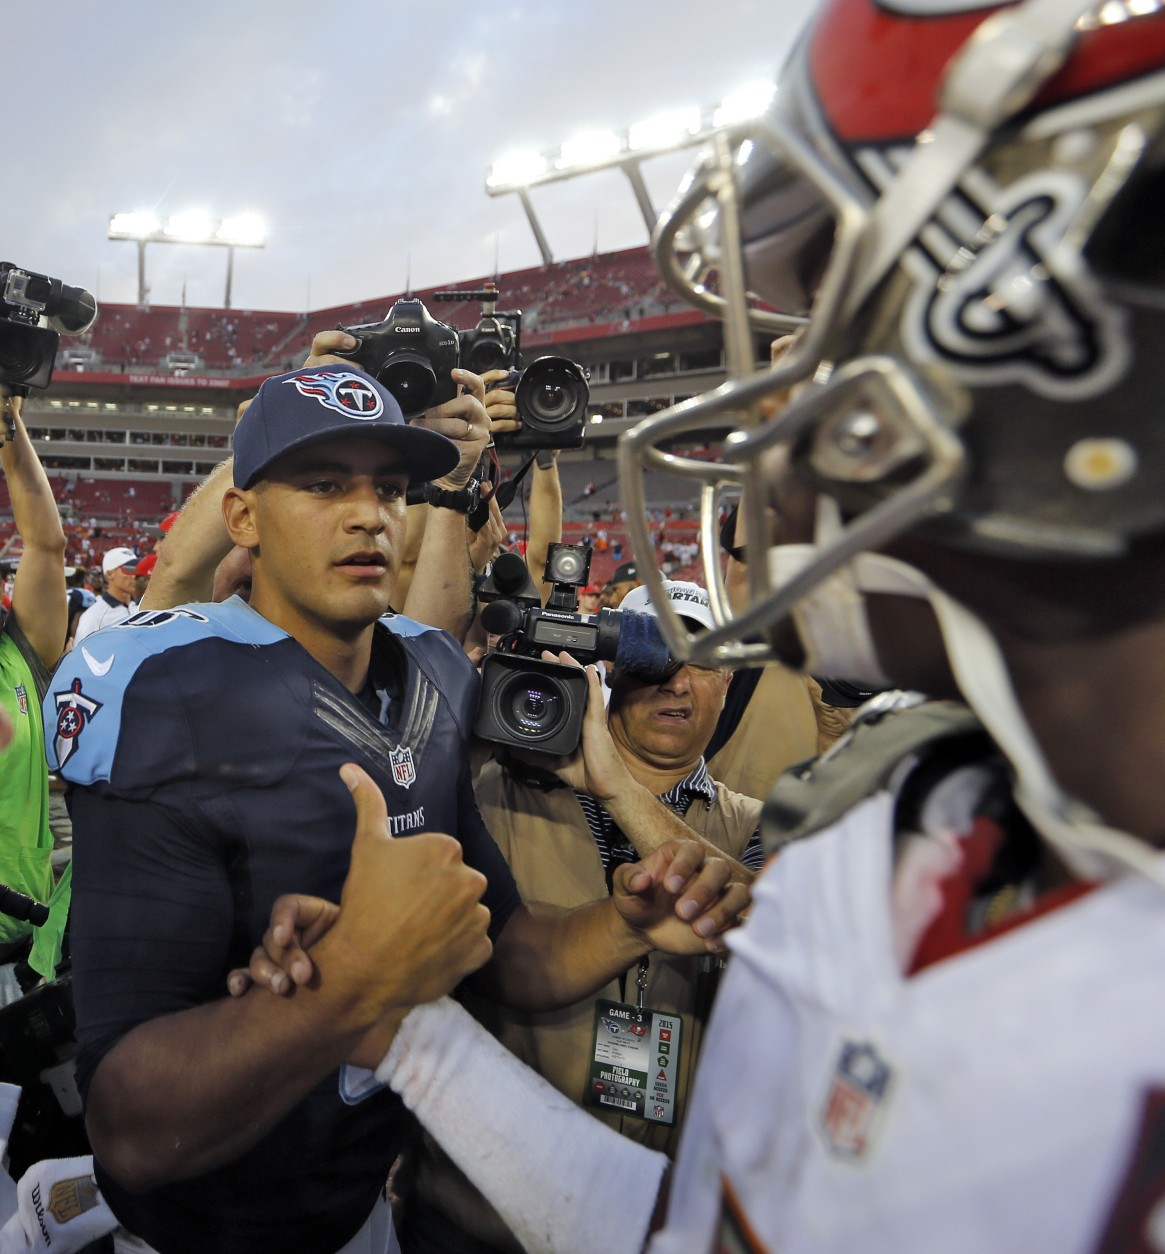 Tennessee Titans quarterback Marcus Mariota, left, shakes hands with Tampa Bay Buccaneers quarterback Jameis Winston after the Titans defeated the Buccaneers 42-14 during an NFL football game Sunday, Sept. 13, 2015, in Tampa, Fla. (AP Photo/Scott Audette)